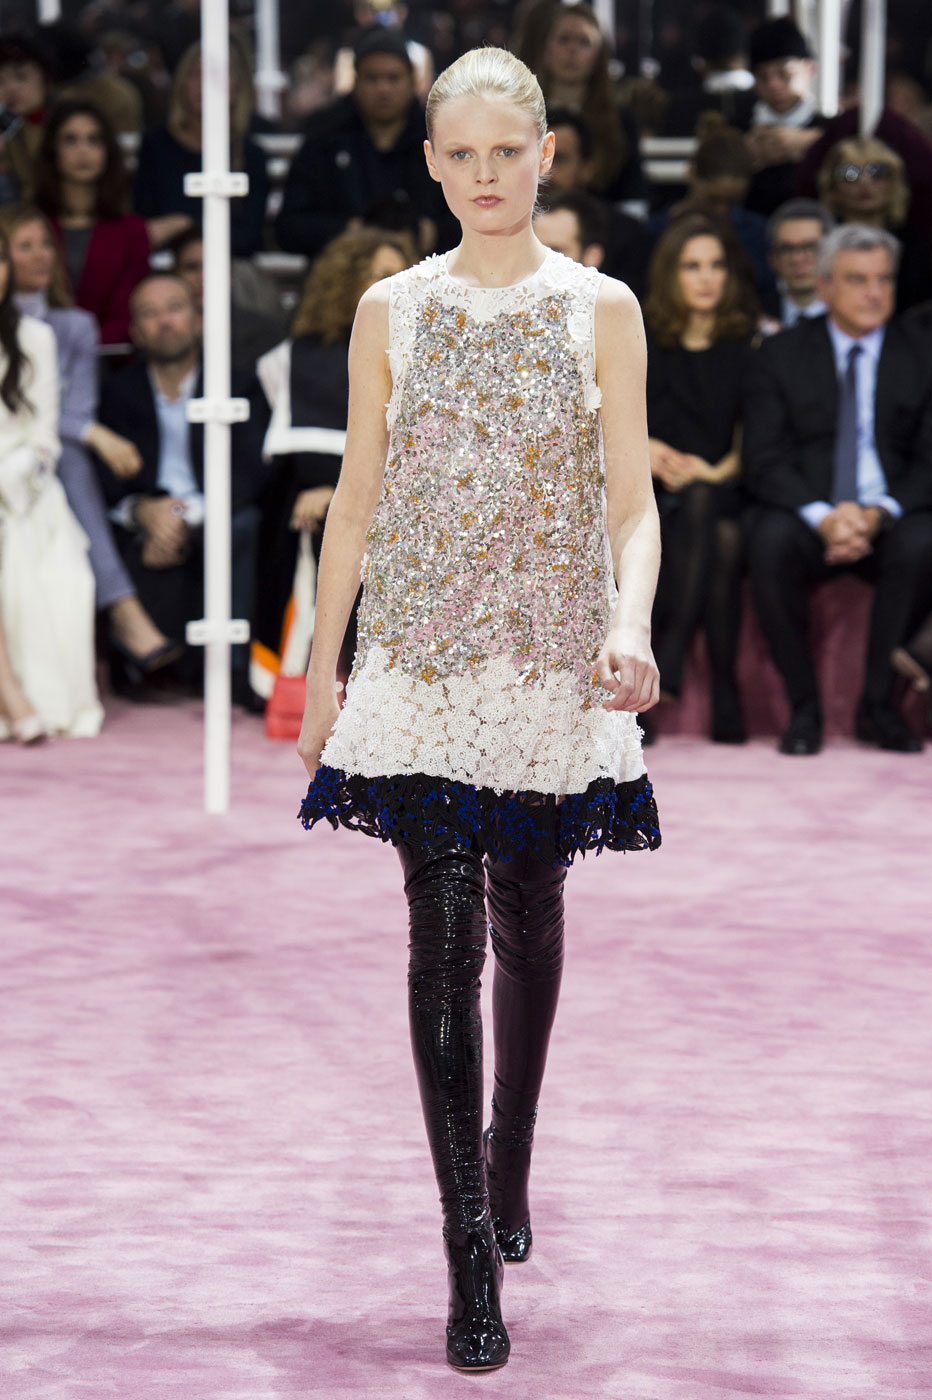 Christian-Dior-fashion-runway-show-haute-couture-paris-spring-summer-2015-the-impression-068